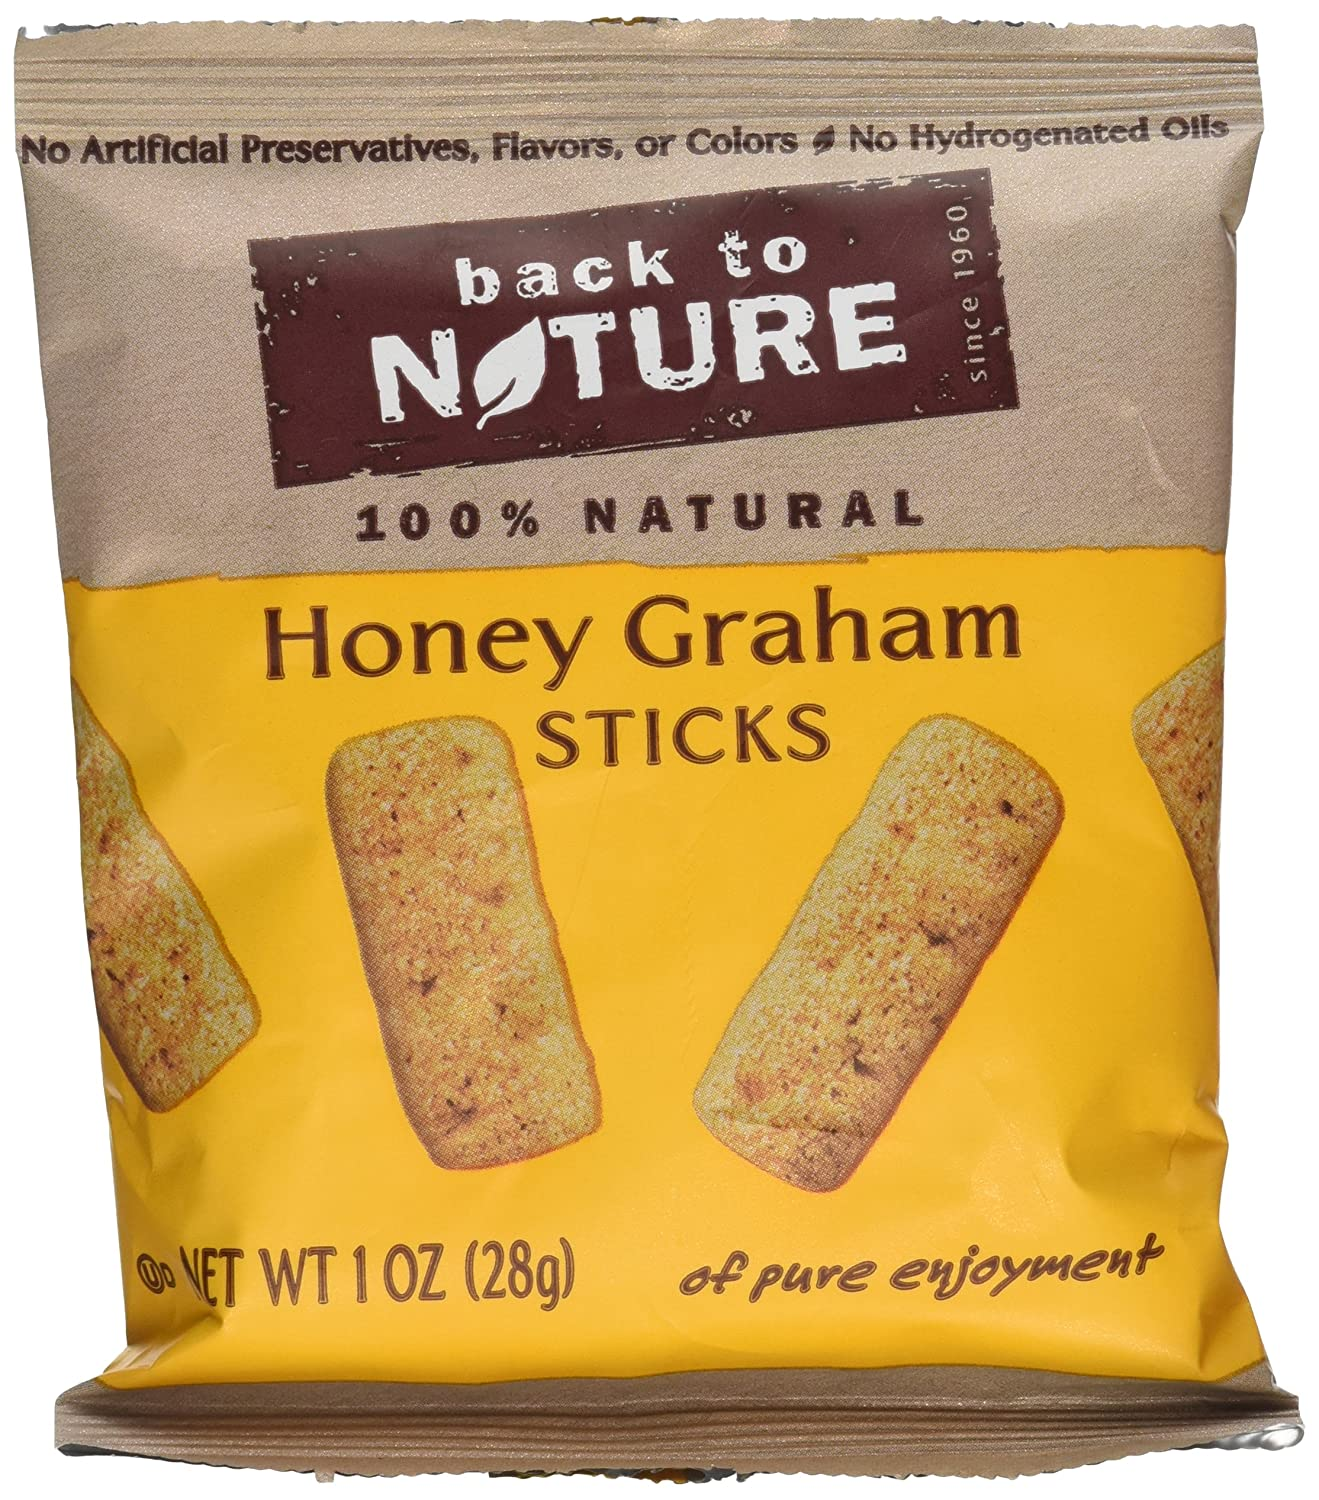 Back To Nature Honey Graham Stick Cookies 1 oz. 8-Count (Pack of 4)